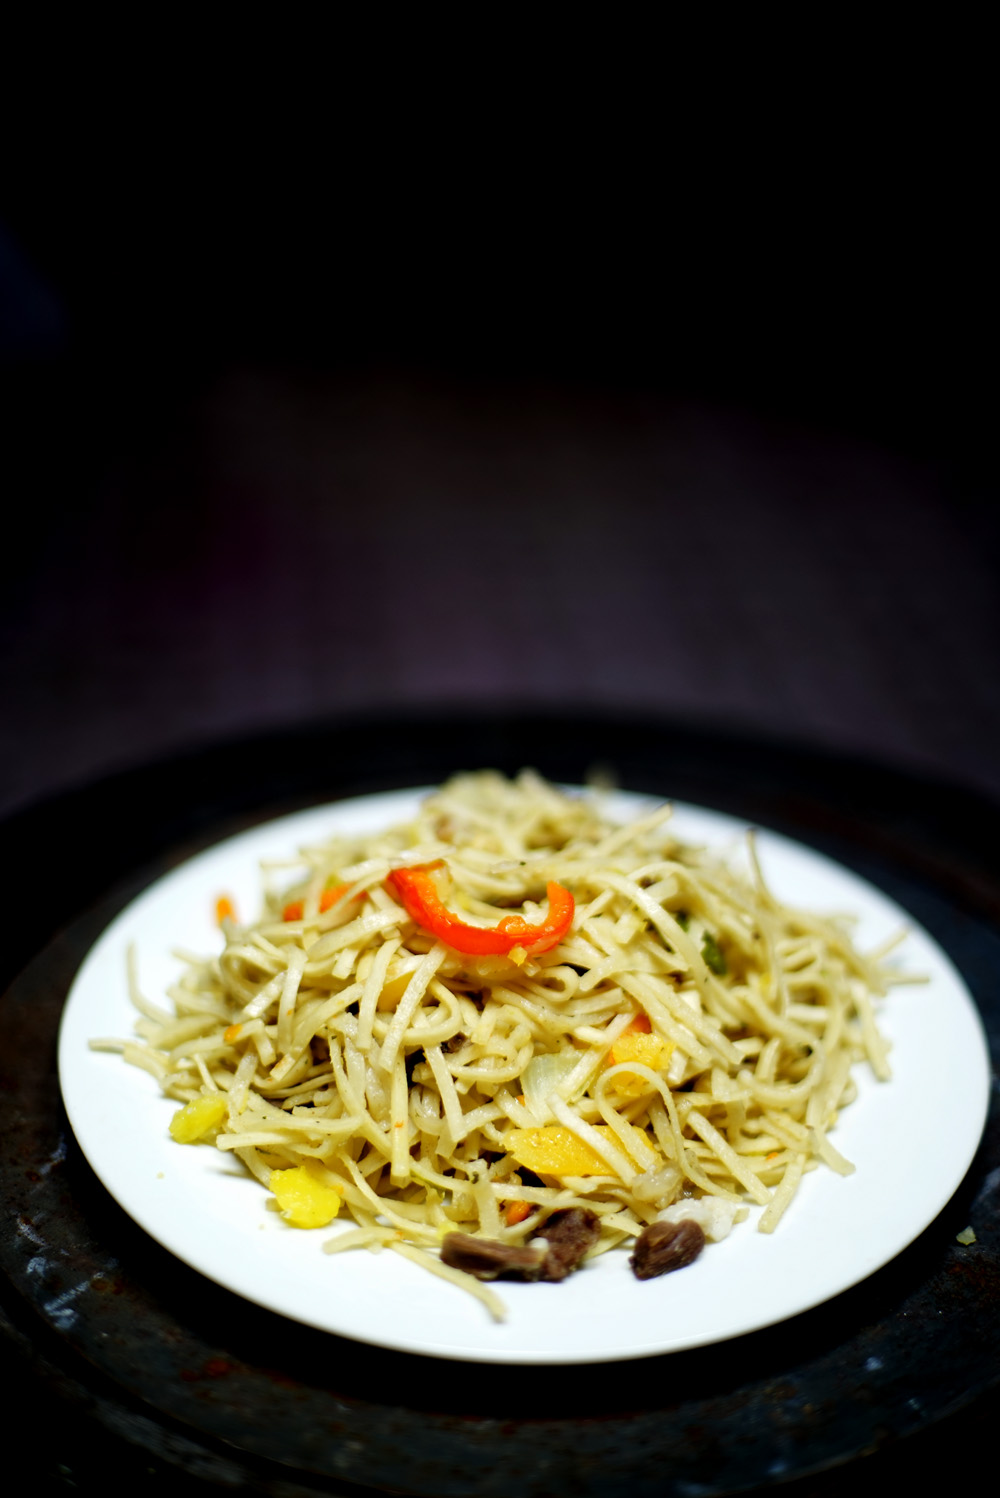 Tsuivan is one of the dishes that you will get offered a lot during your home stays with nomadic families.